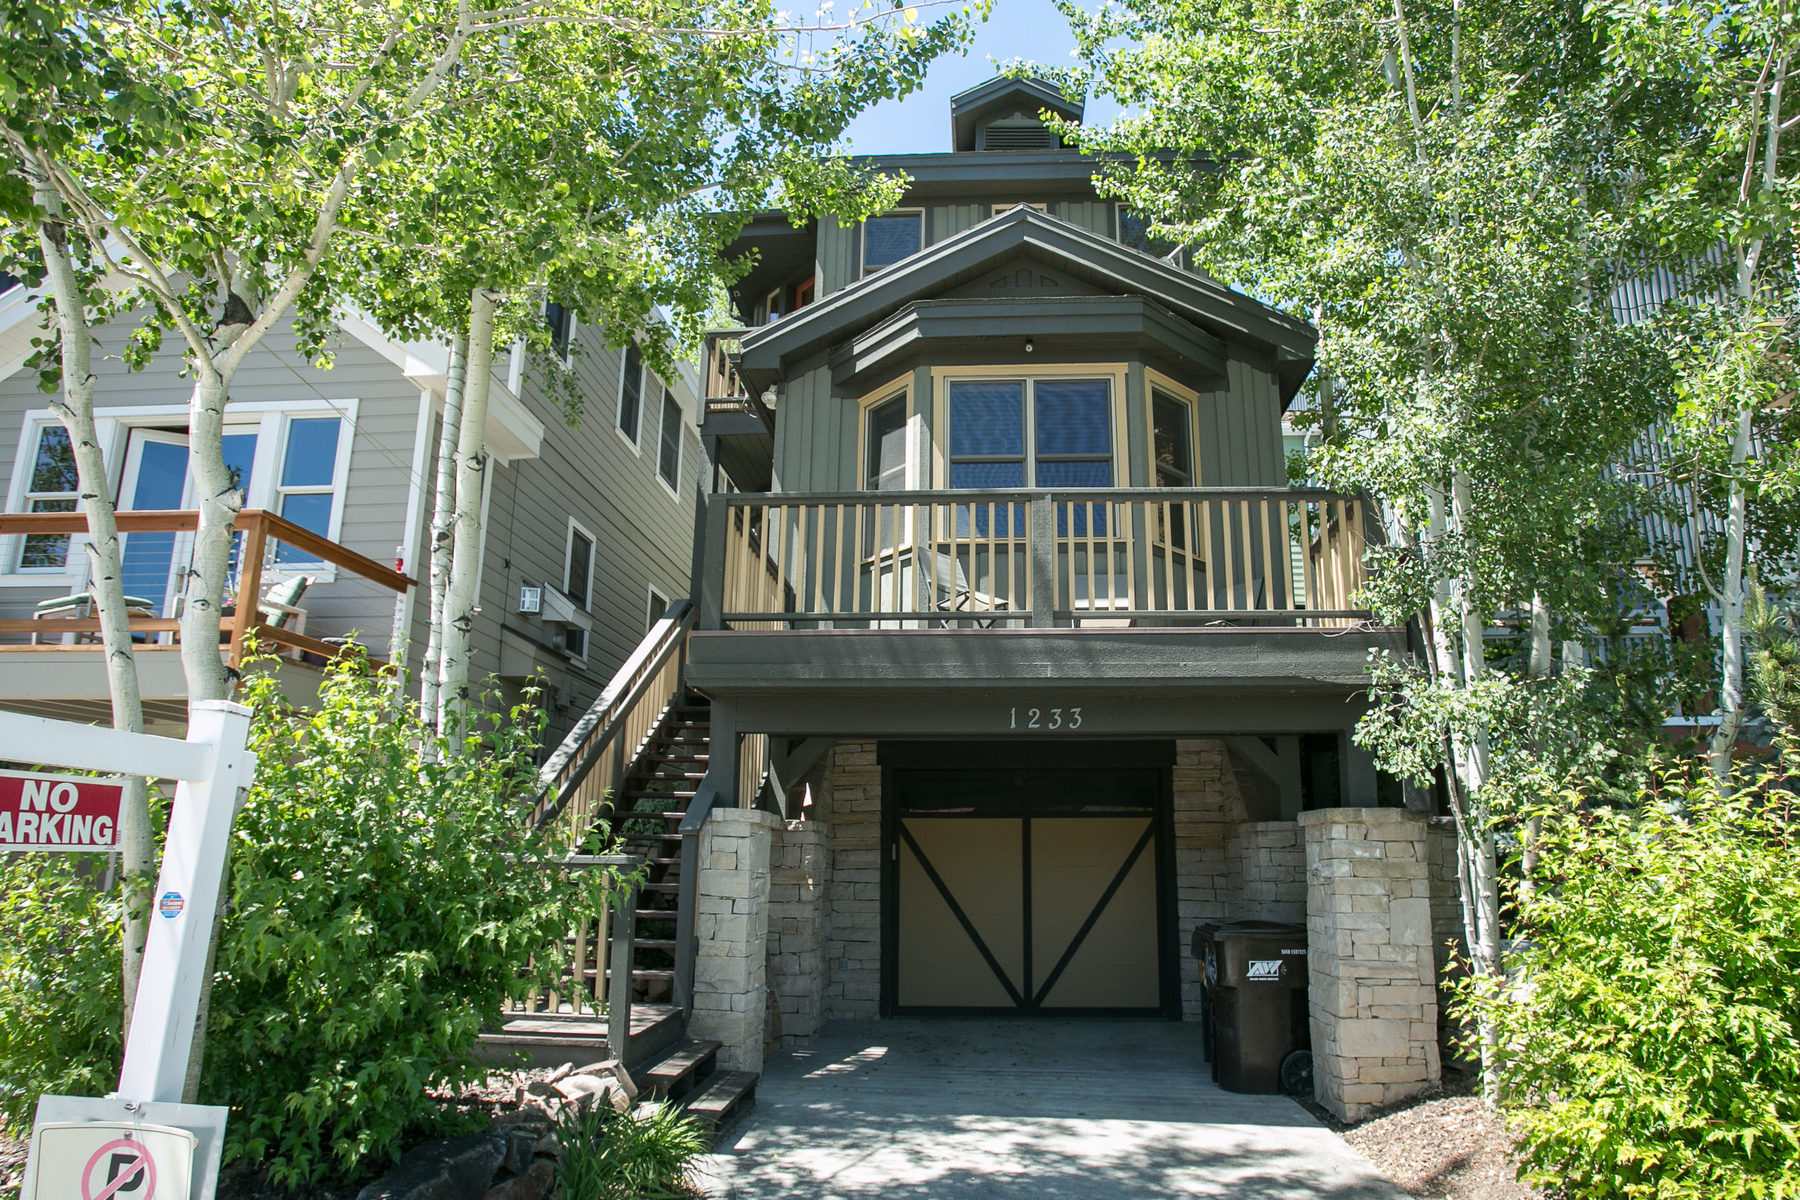 Villa per Vendita alle ore Gorgeous Home w/ Epic Location! Walk to Vail's Park City Mountain Resort. 1233 Empire Ave Park City, Utah 84060 Stati Uniti